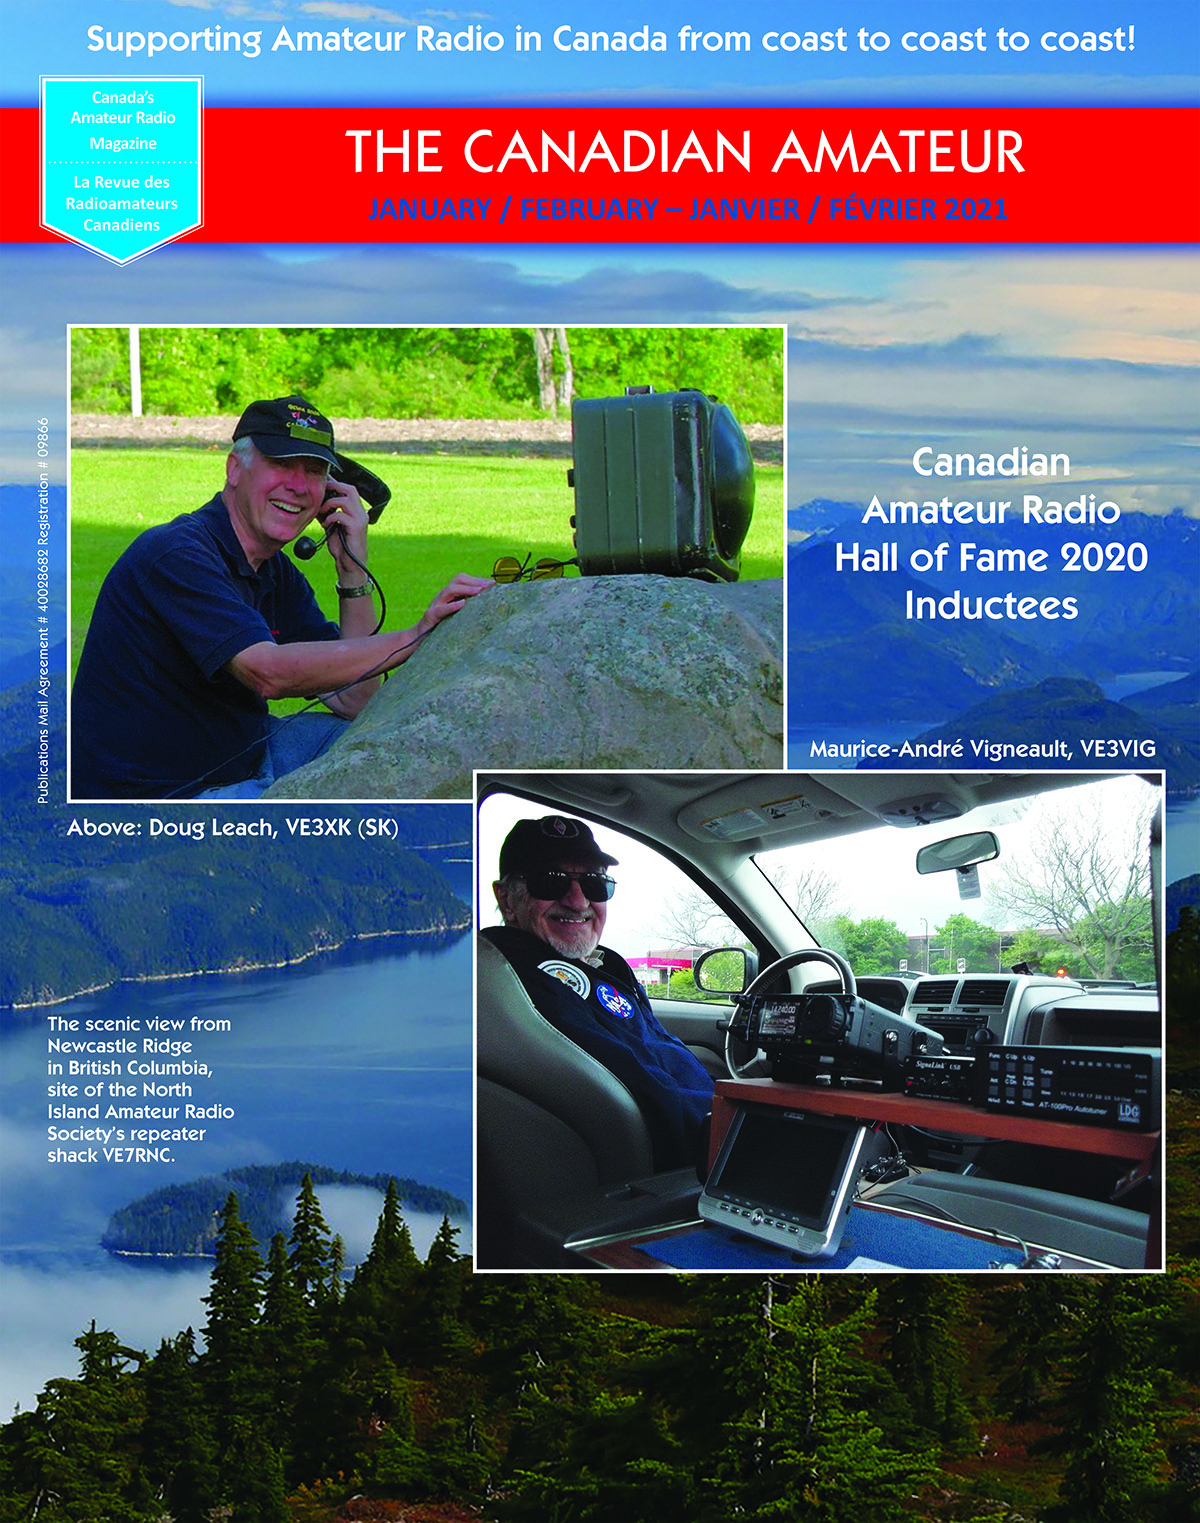 Cover of January-February 2021 issue of The Canadian Amateur magazine